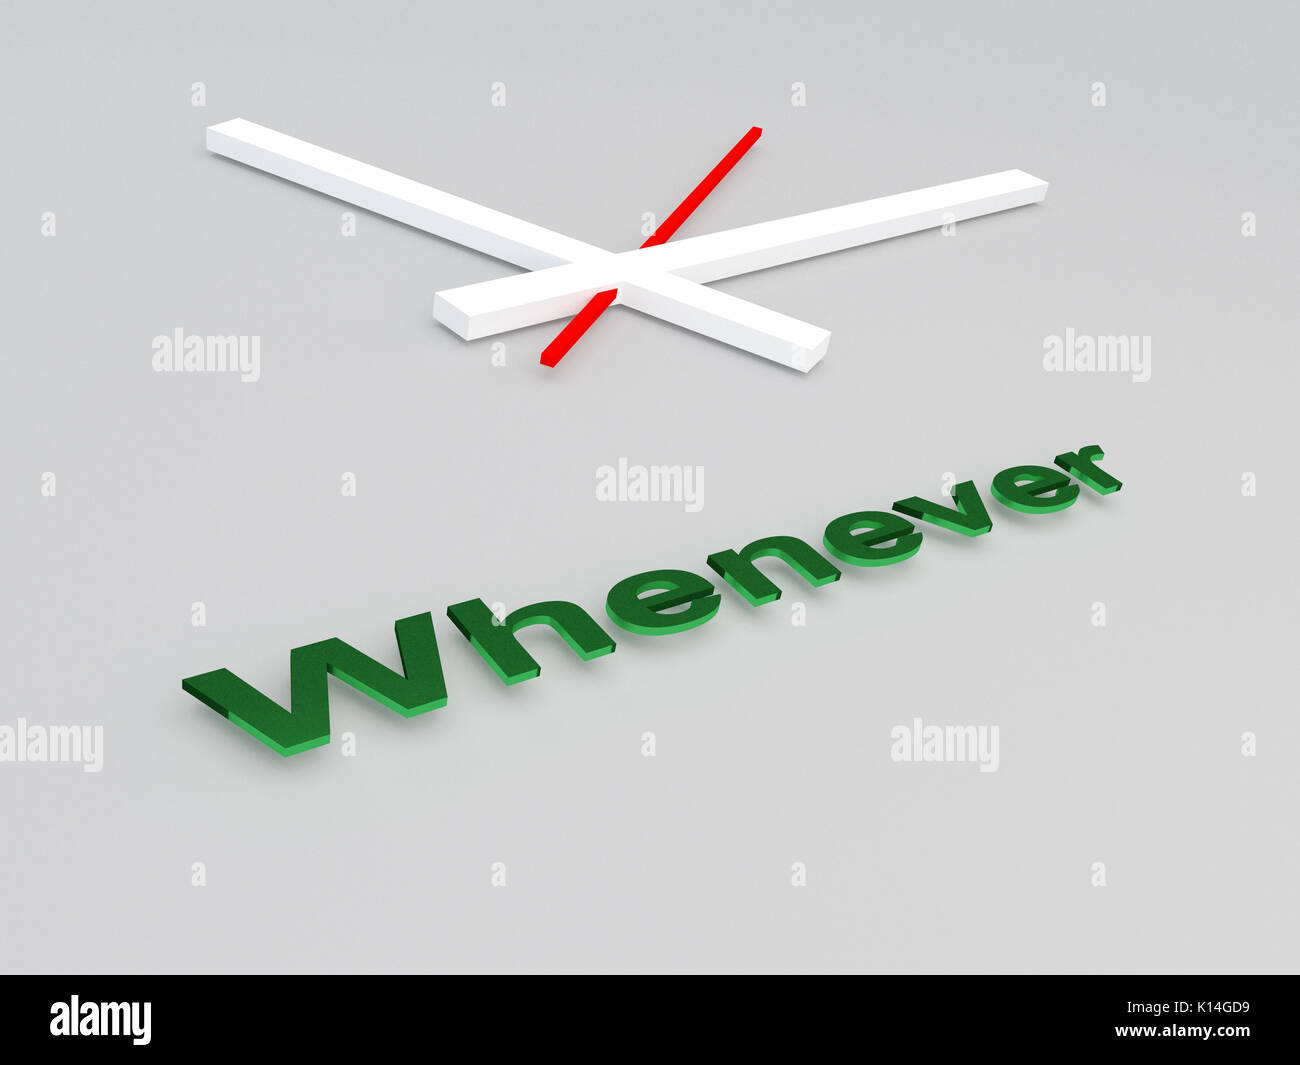 3D illustration of 'Whenever' title with a clock as a background - Stock Image